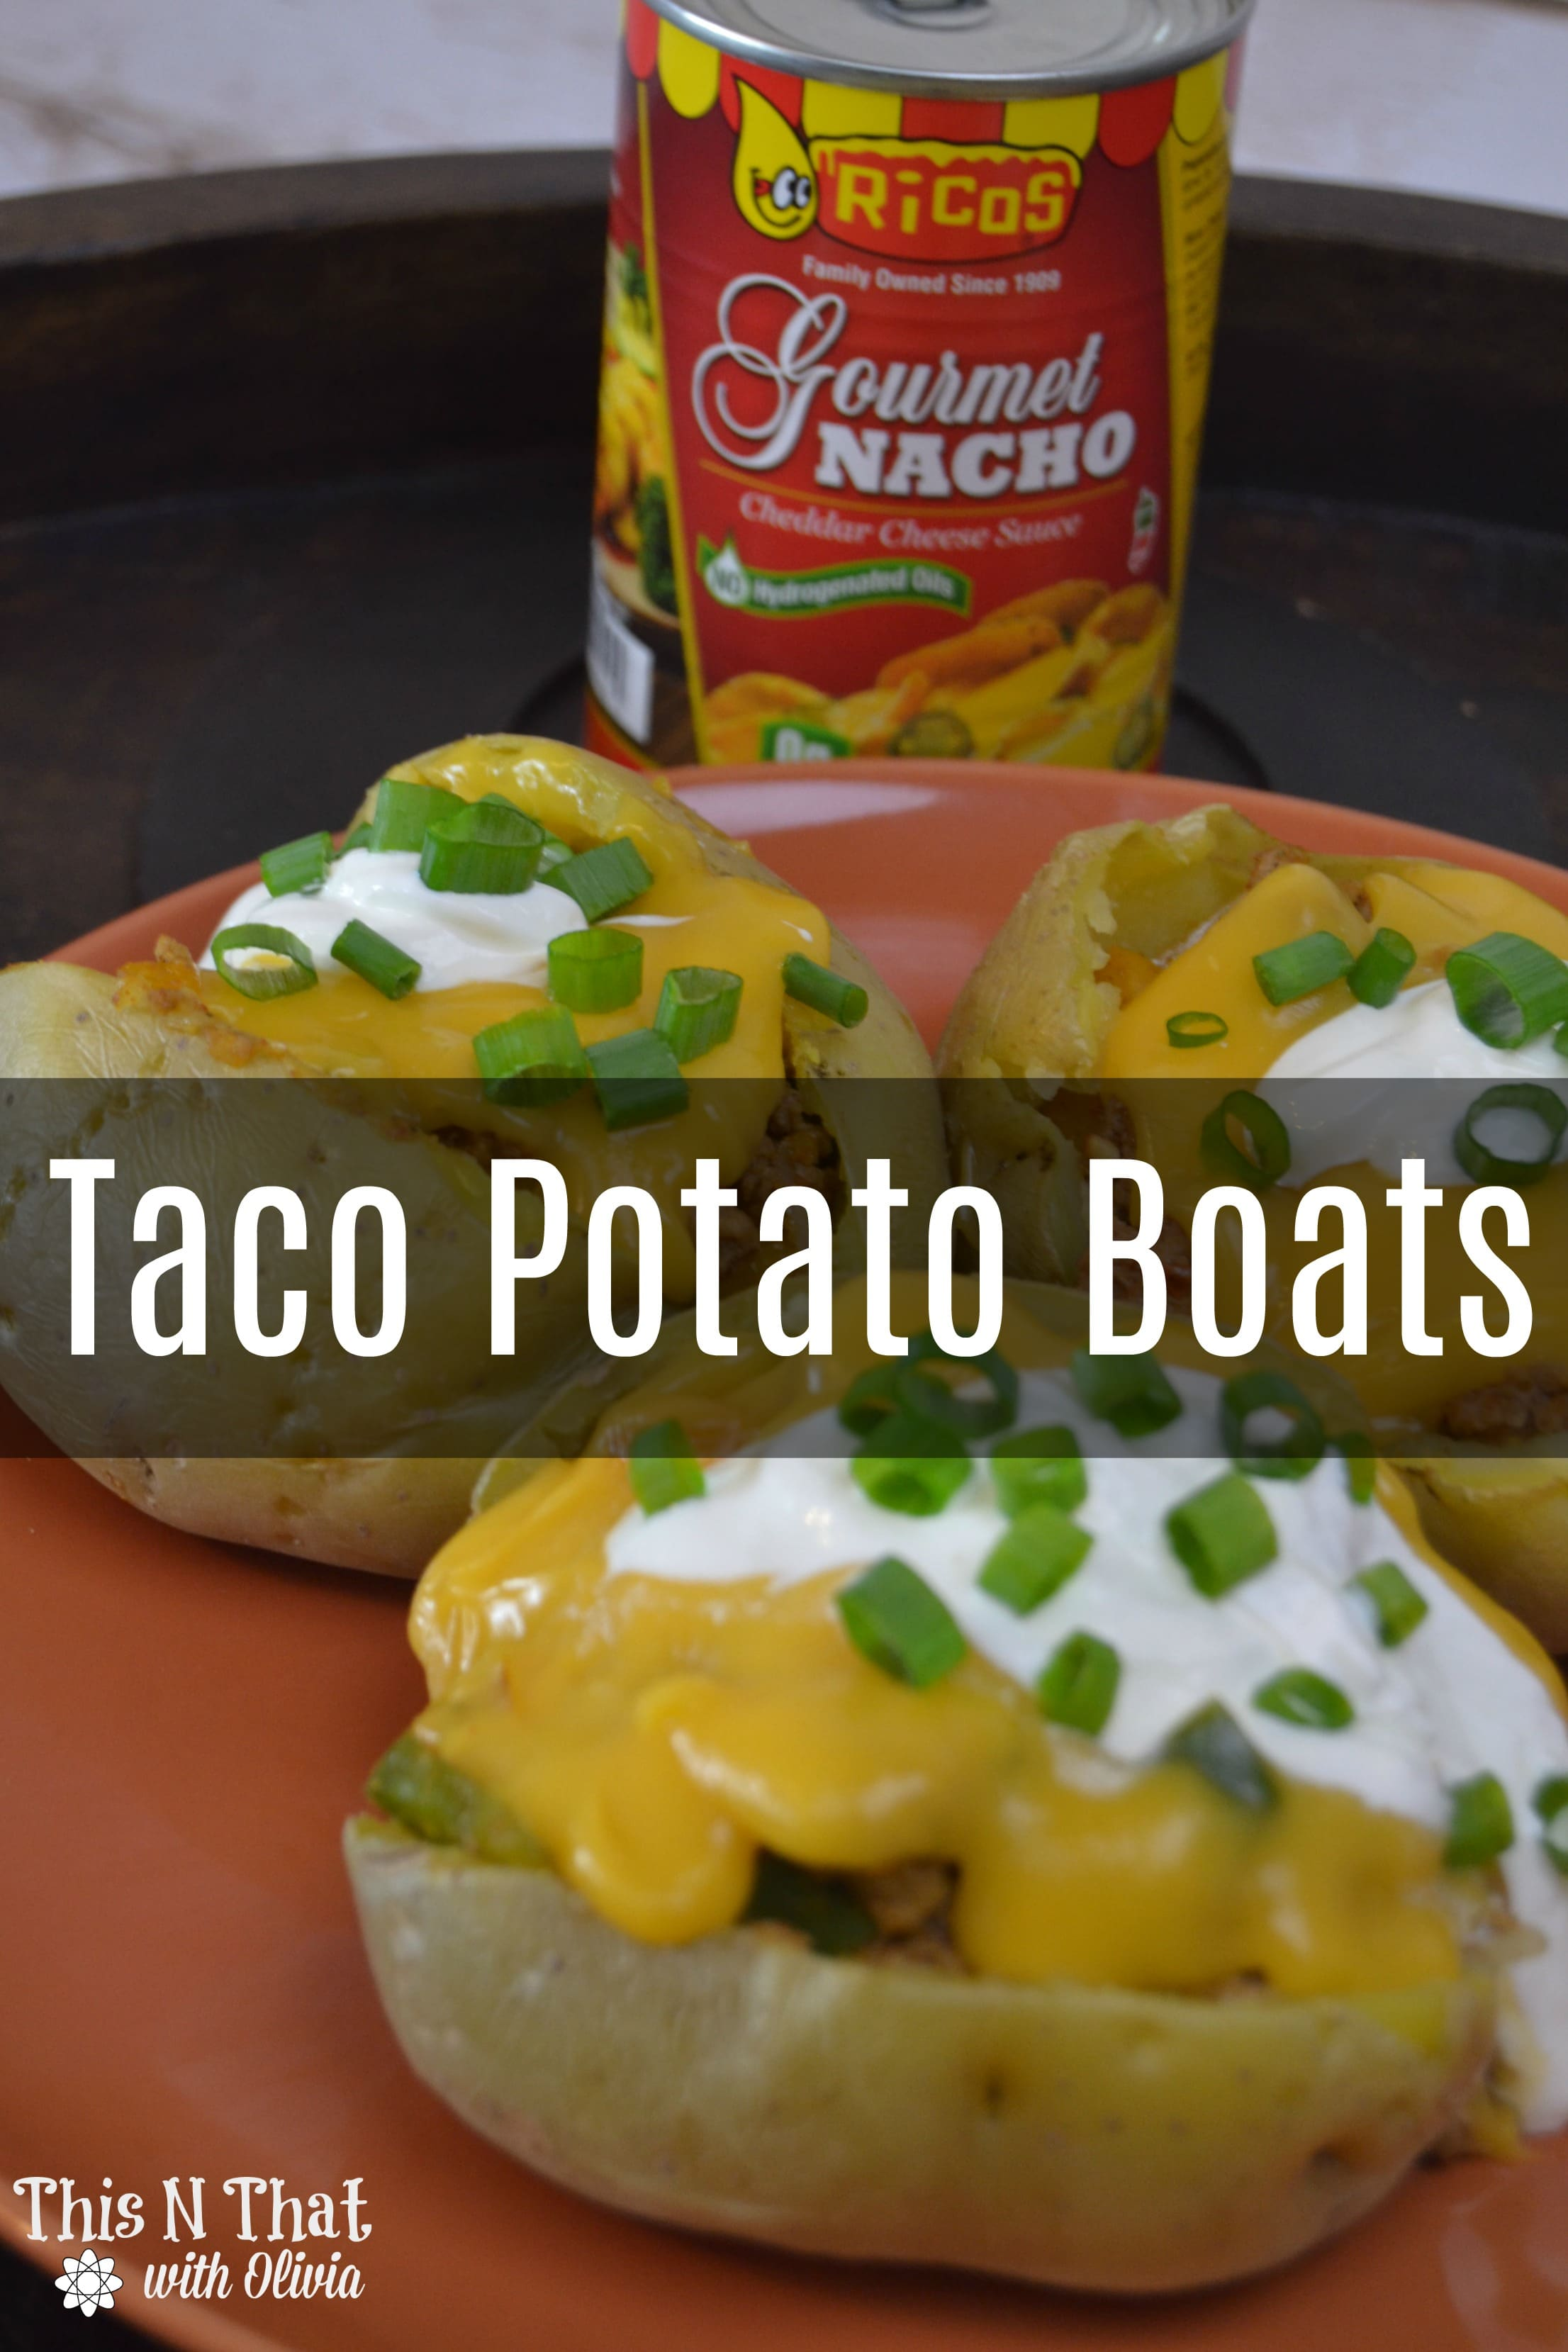 Taco Potato Boats #RicosCheesePlease @RicosProducts